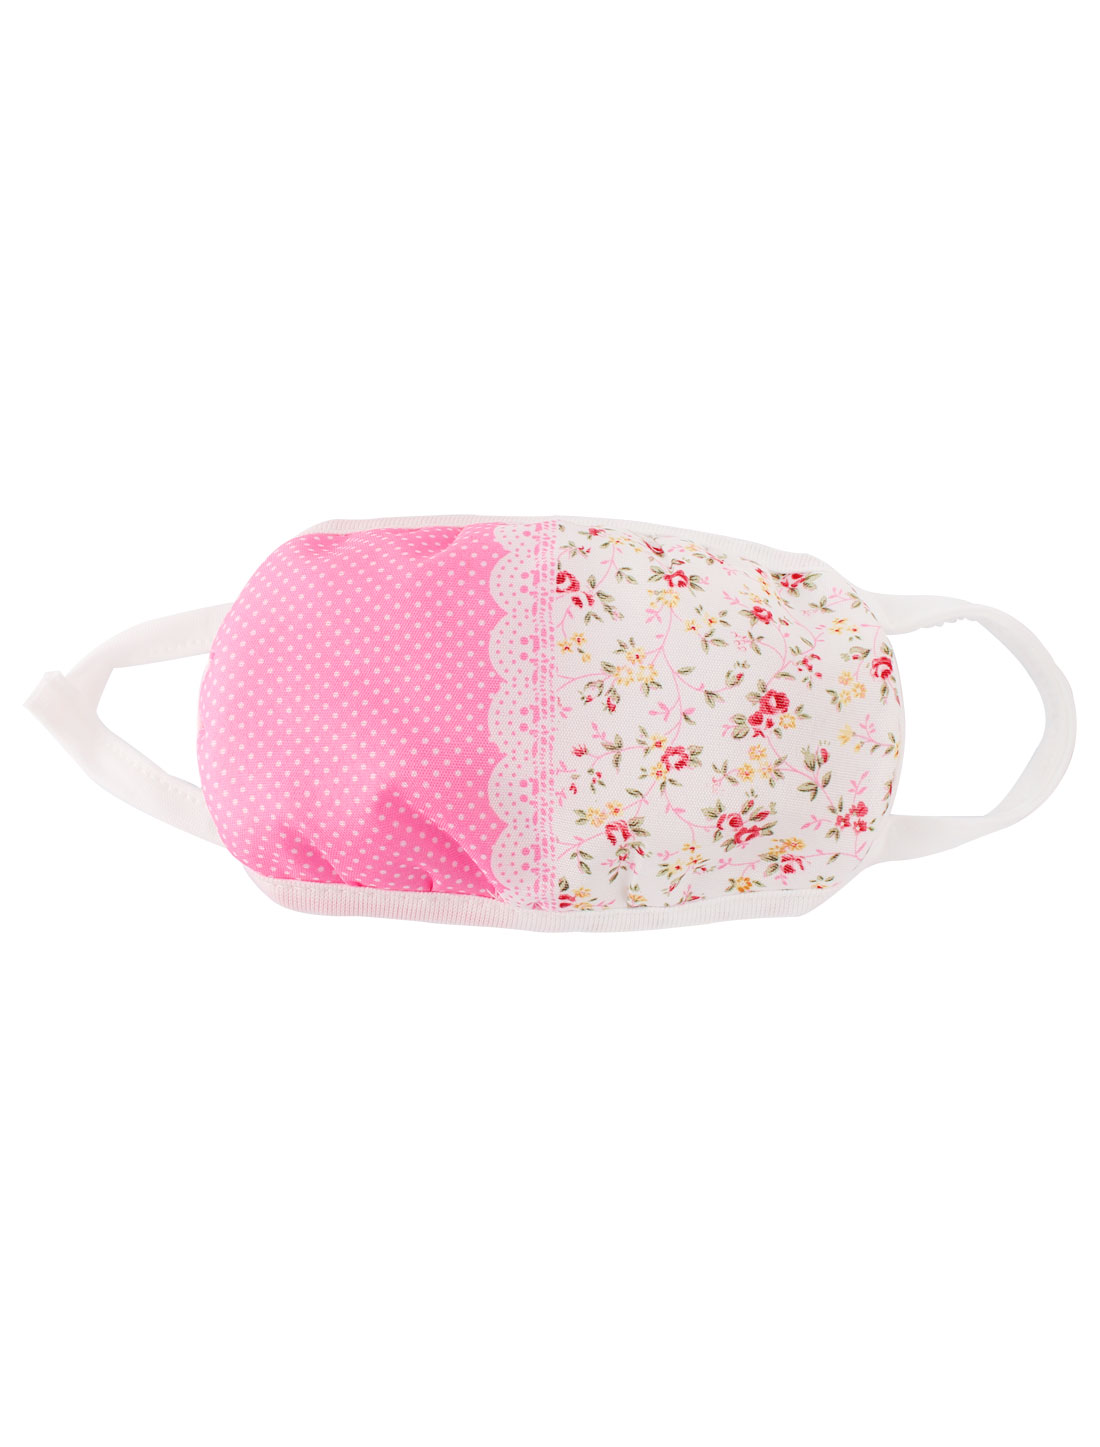 Woman Flower Pattern Face Mouth Mask Cover Earloop Respirator Protector Pink